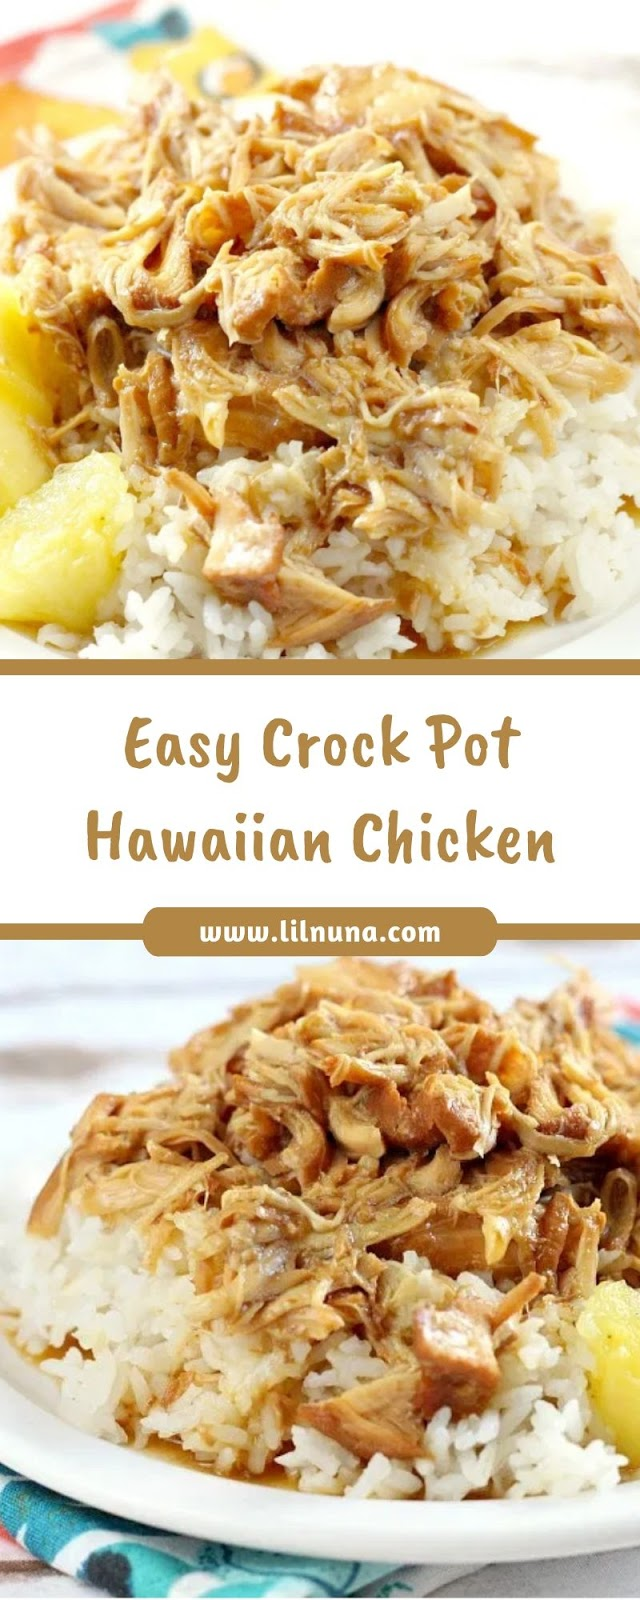 Easy Crock Pot Hawaiian Chicken